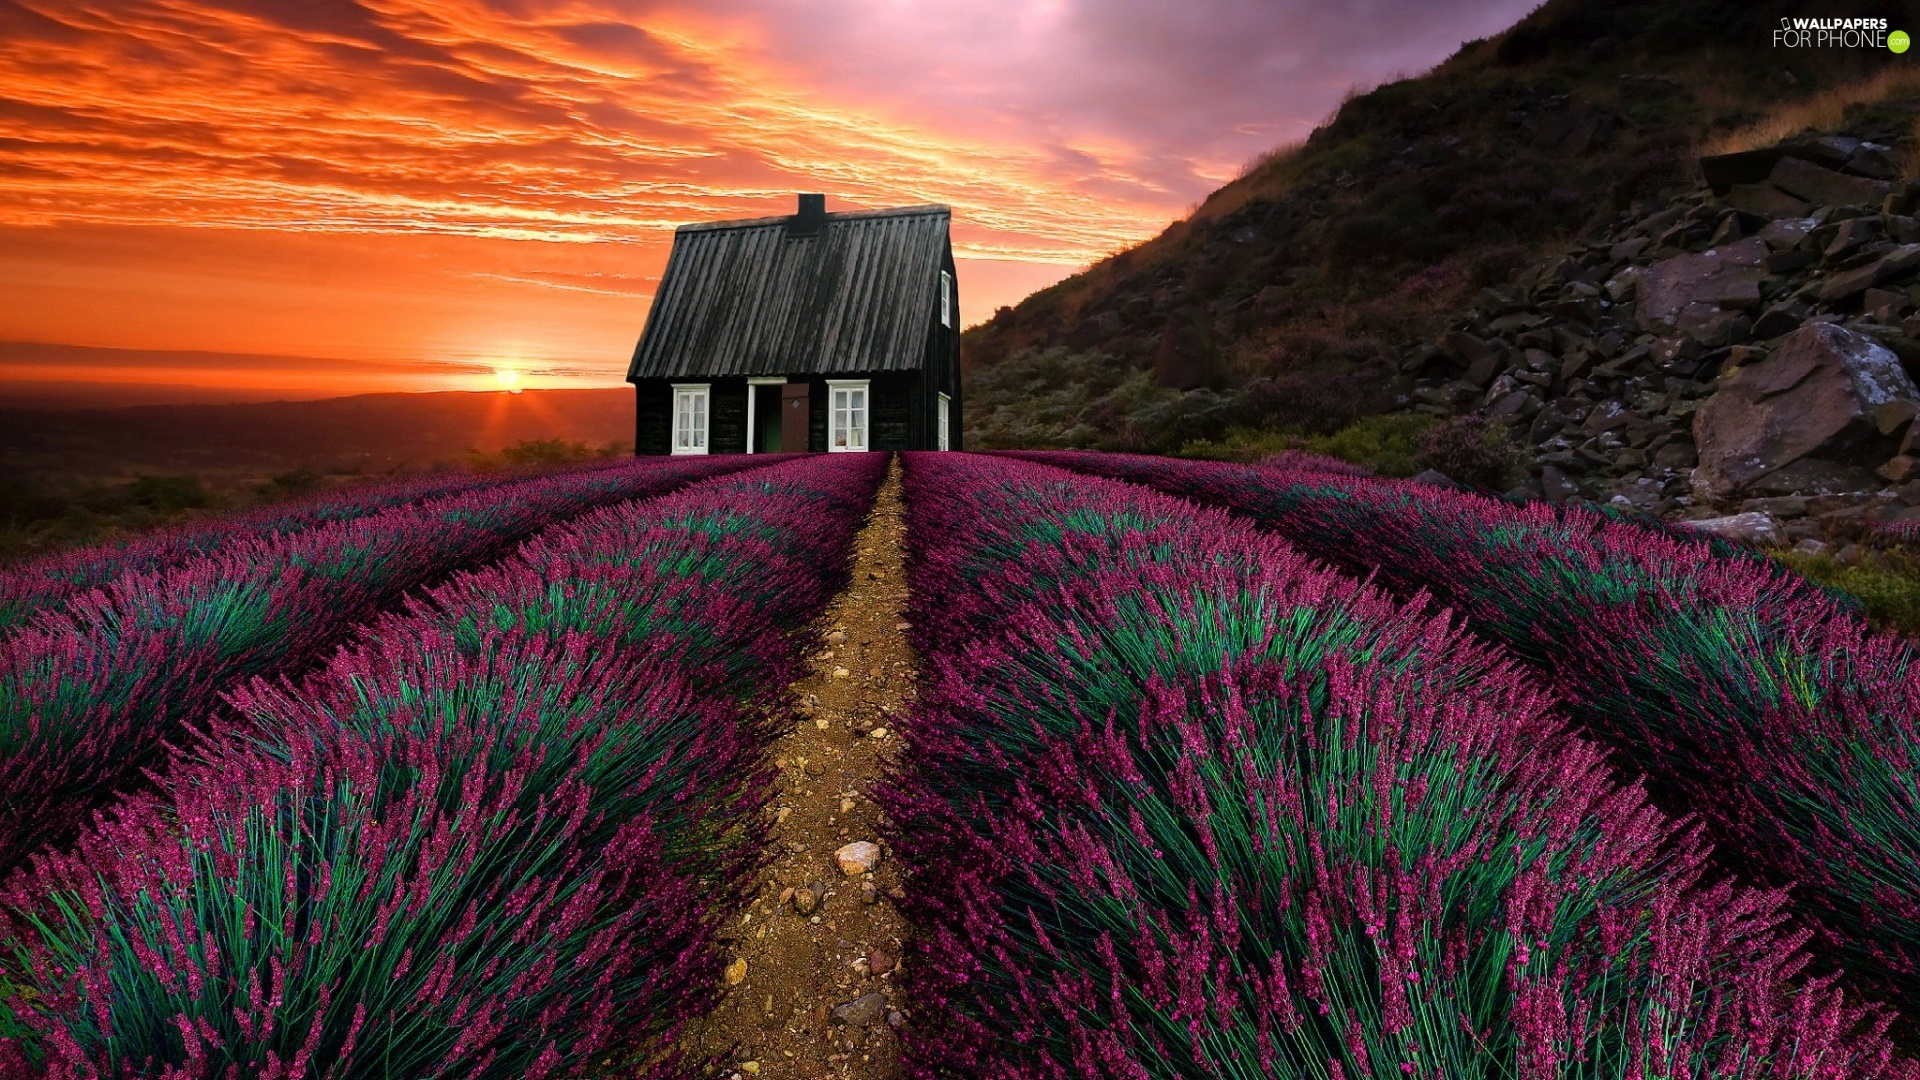 Hill, Great Sunsets, Field, lavender, house